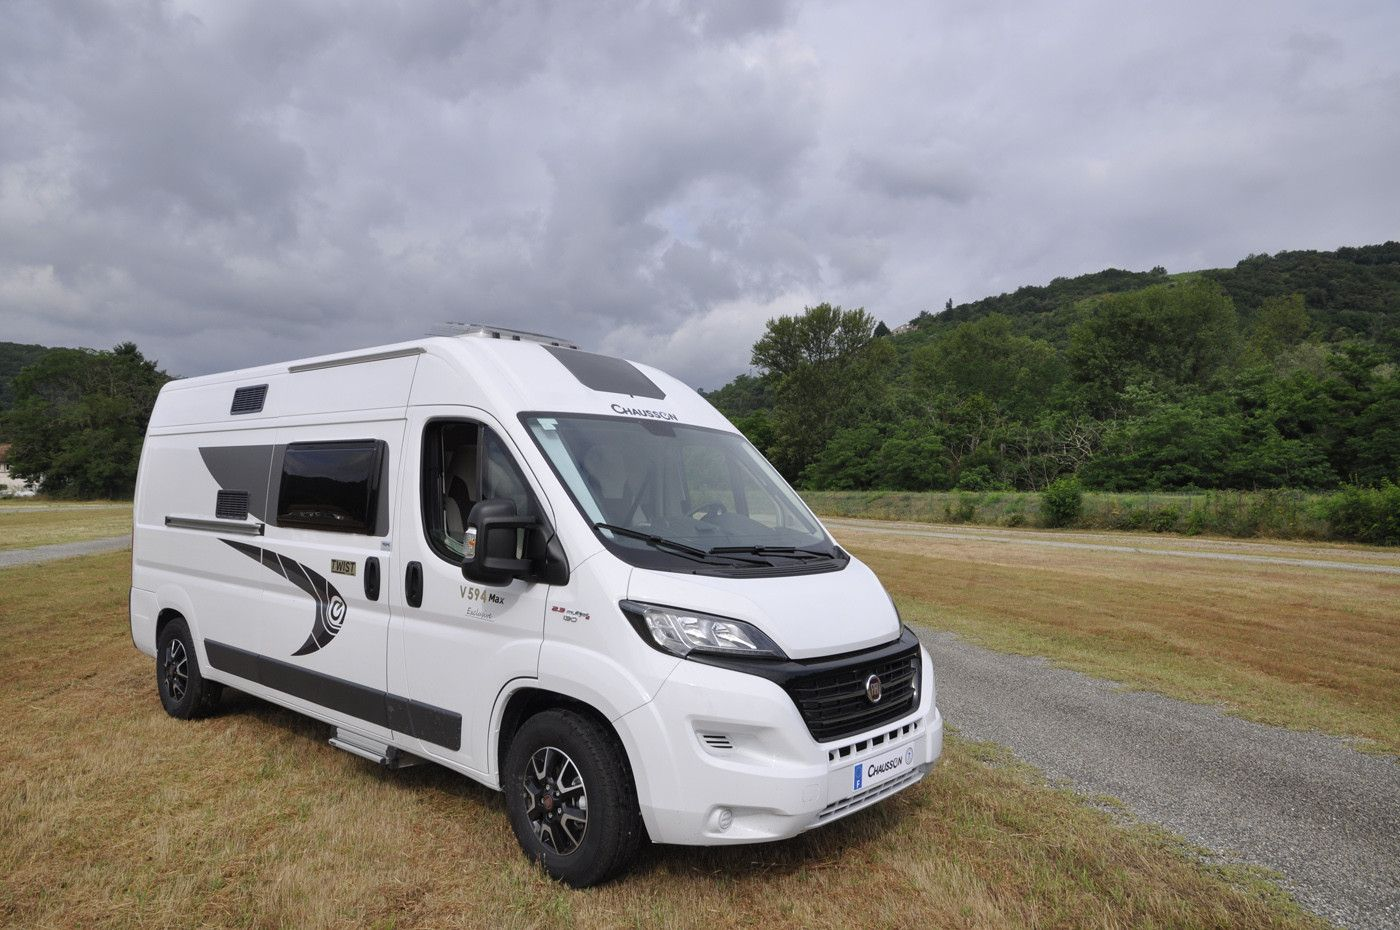 A A-Class Motorhome called Twist and for hire in vilnius district, Lithuania